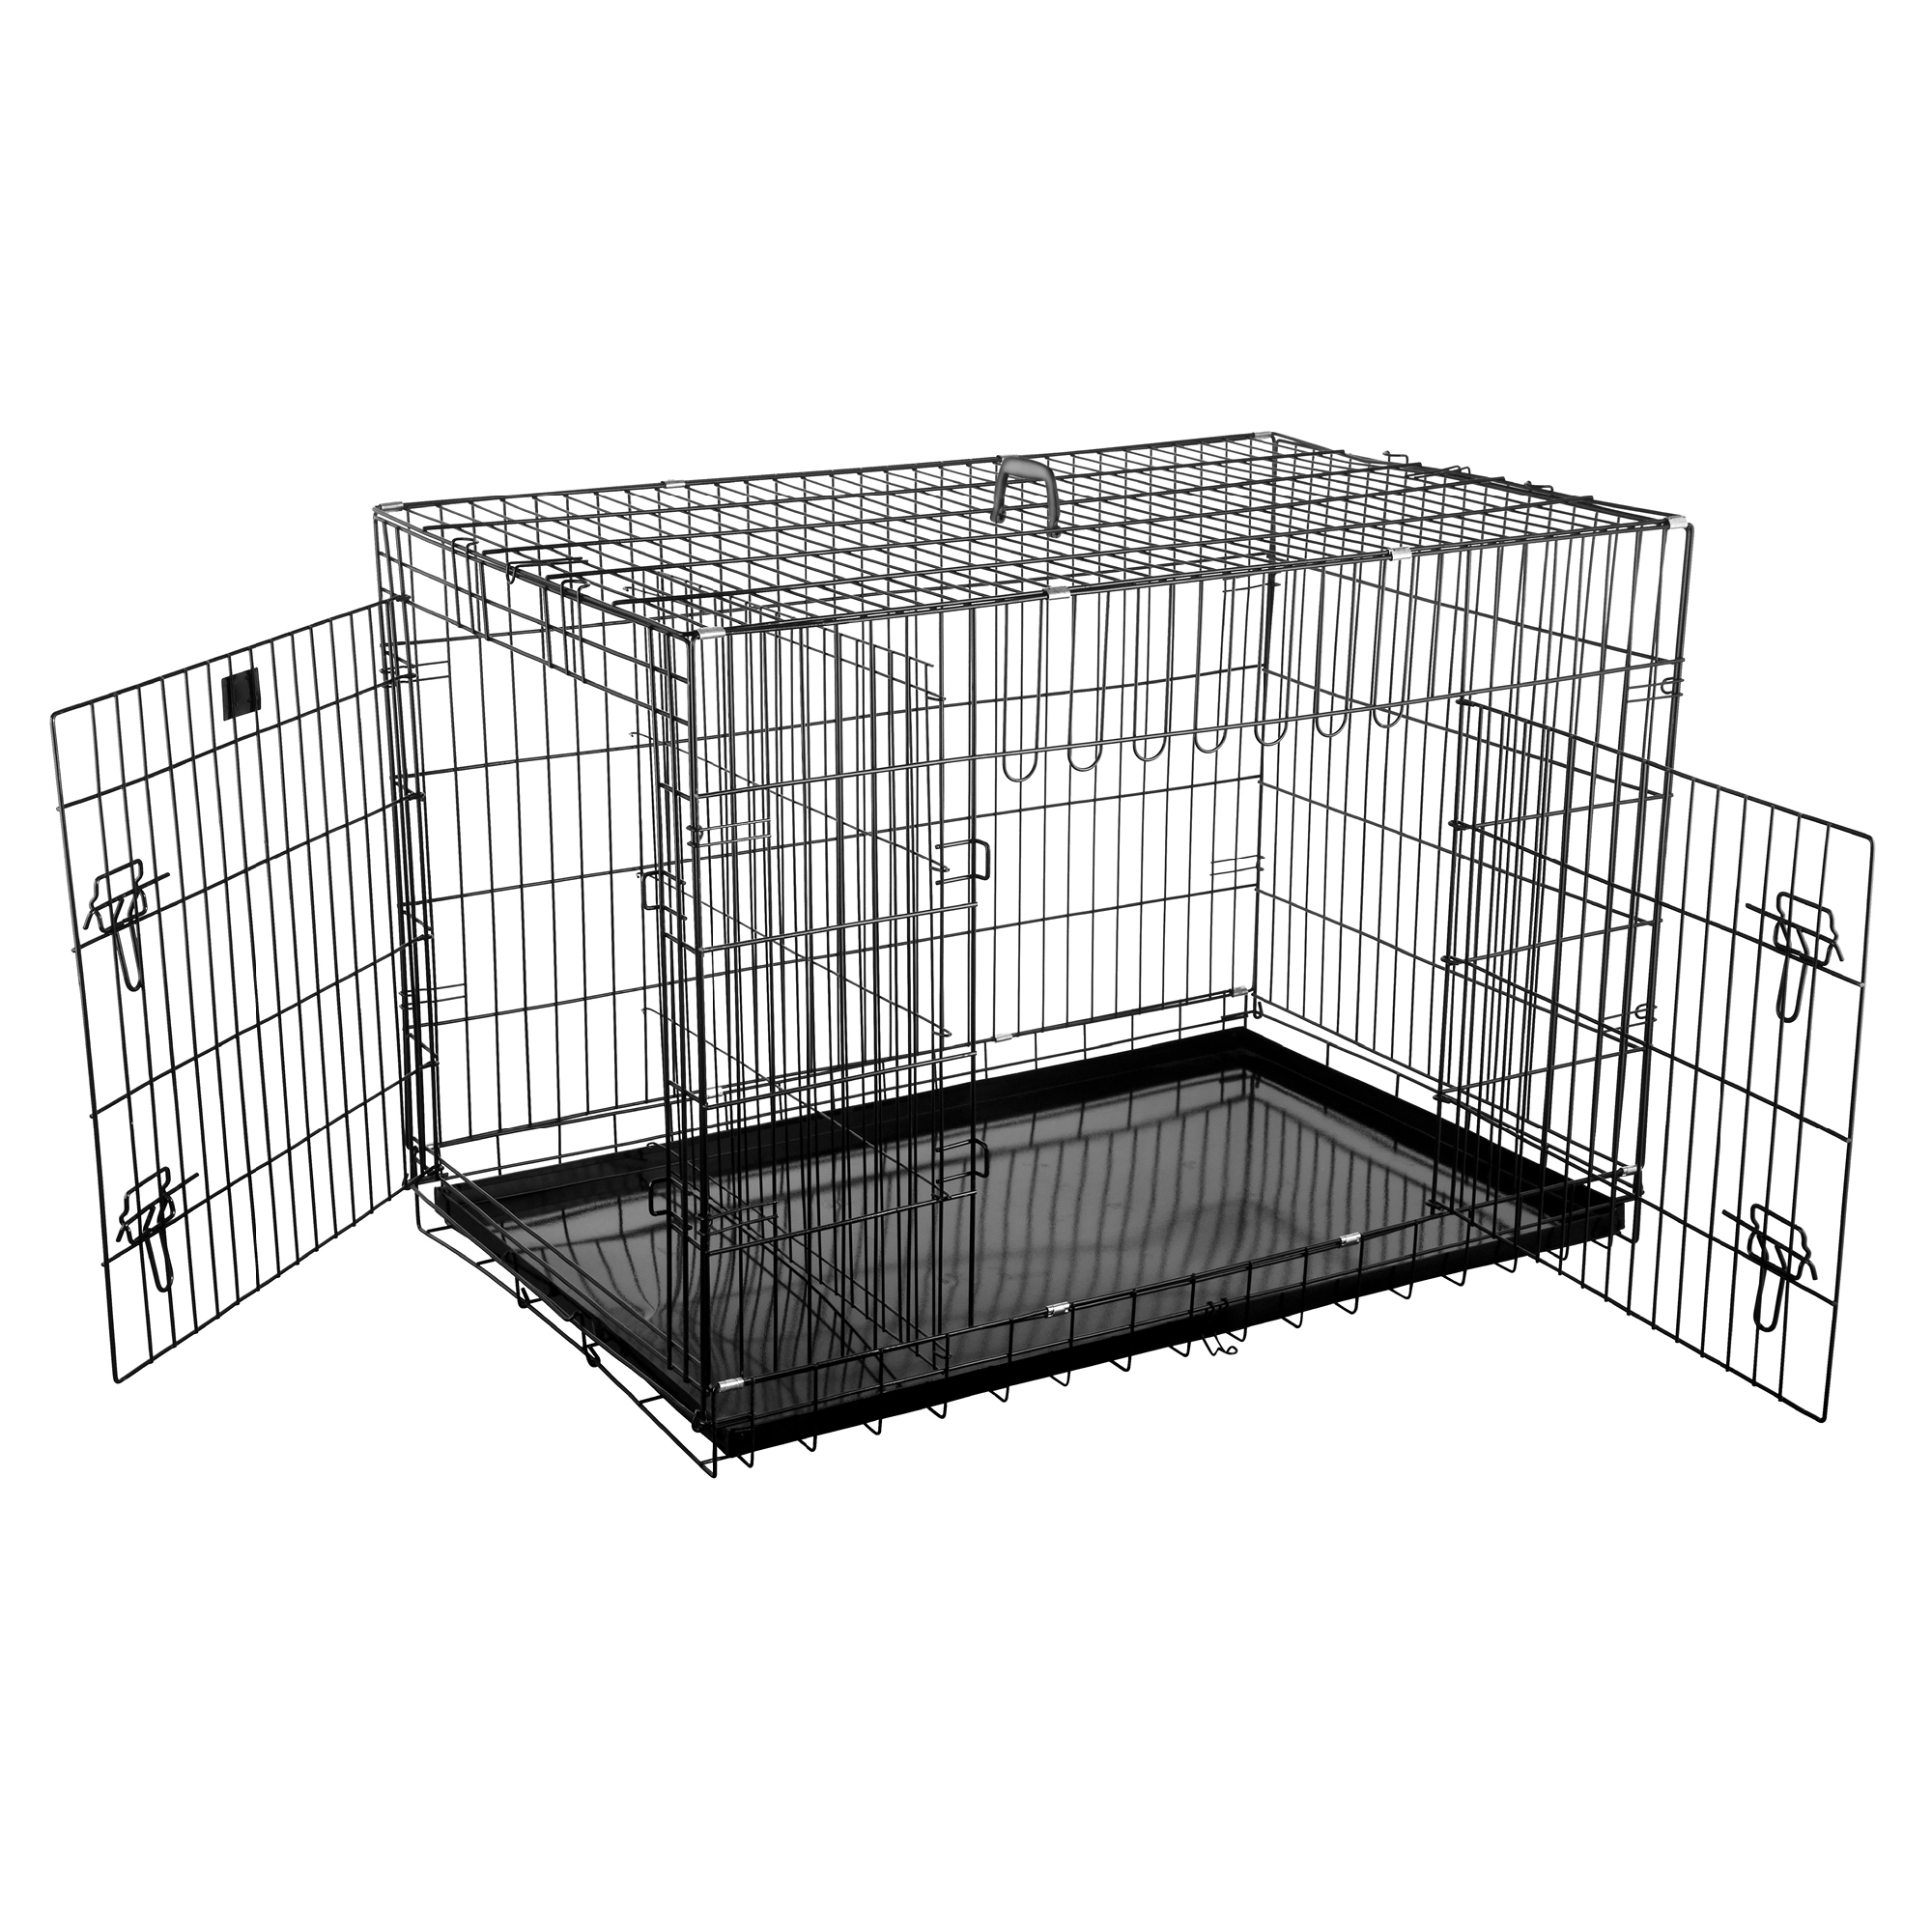 "Pet Trex Premium Quality 42"" Folding Pet Crate Kennel Wire Cage for Dogs Cats or Rabbits"